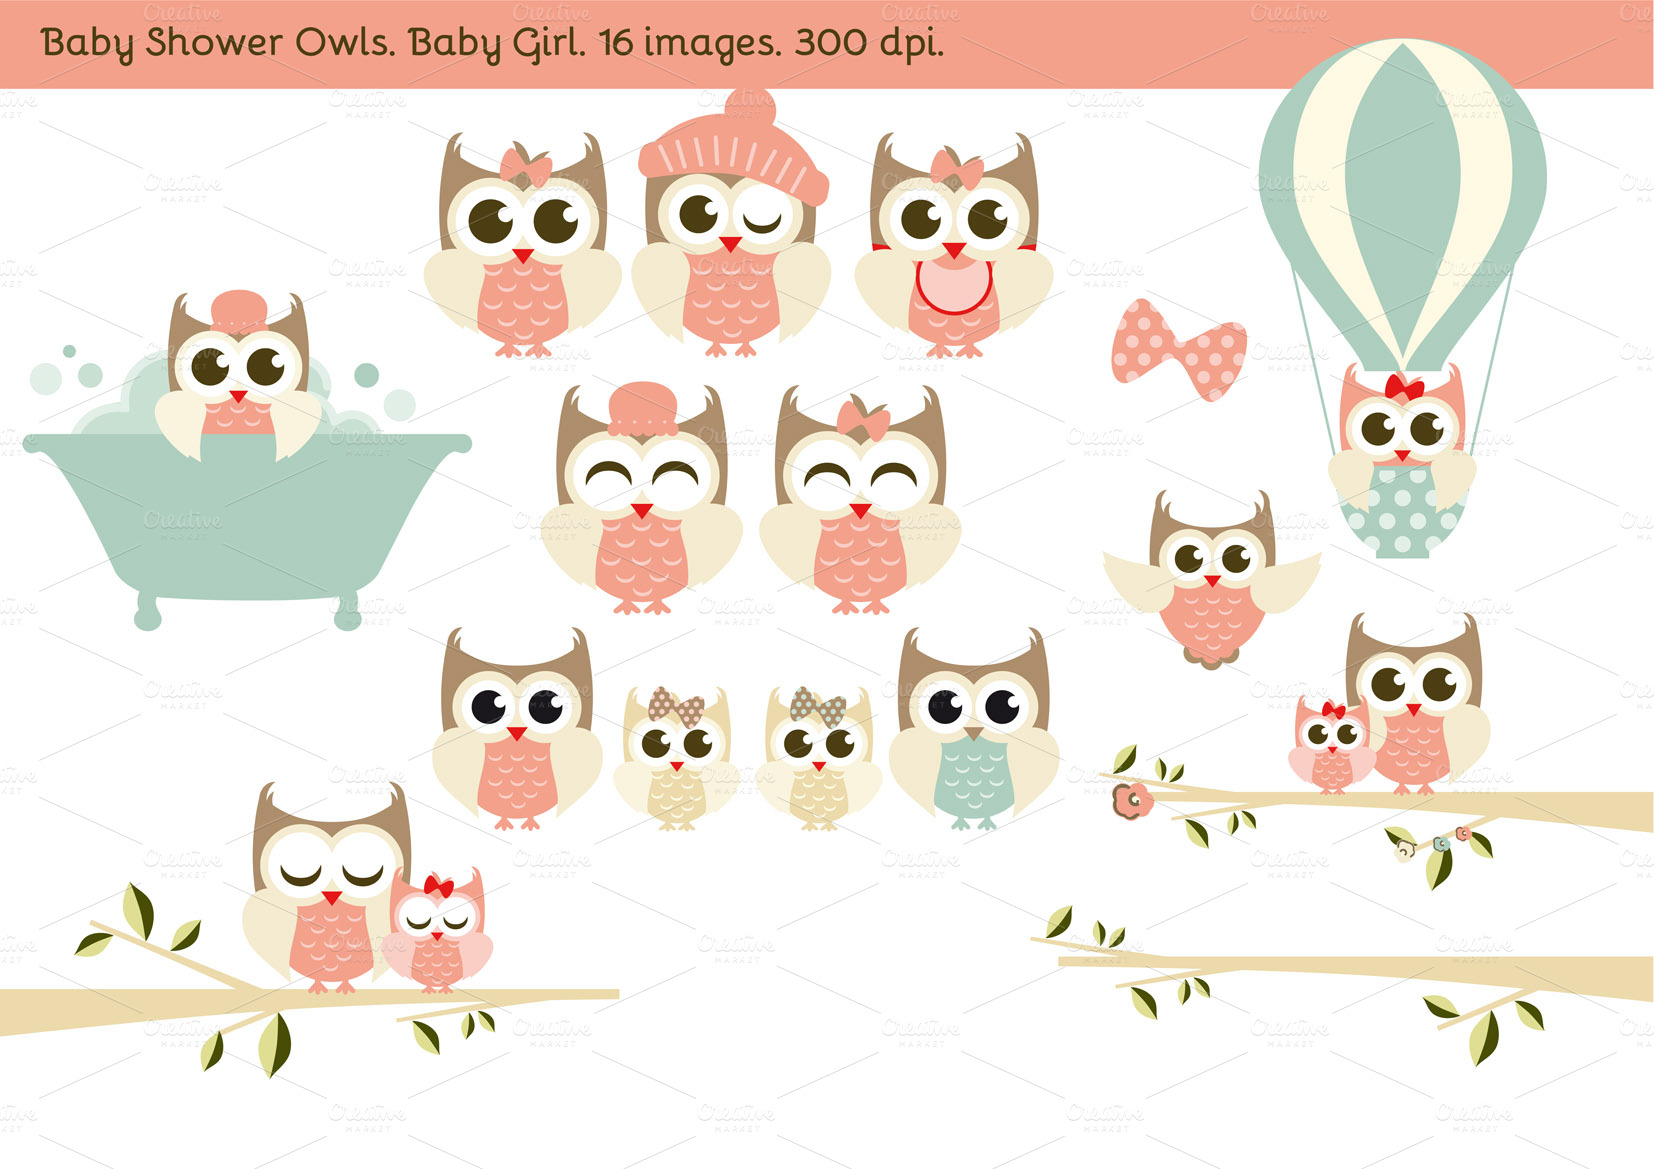 Girl Showering Clipart Baby Shower Owls Baby Girl